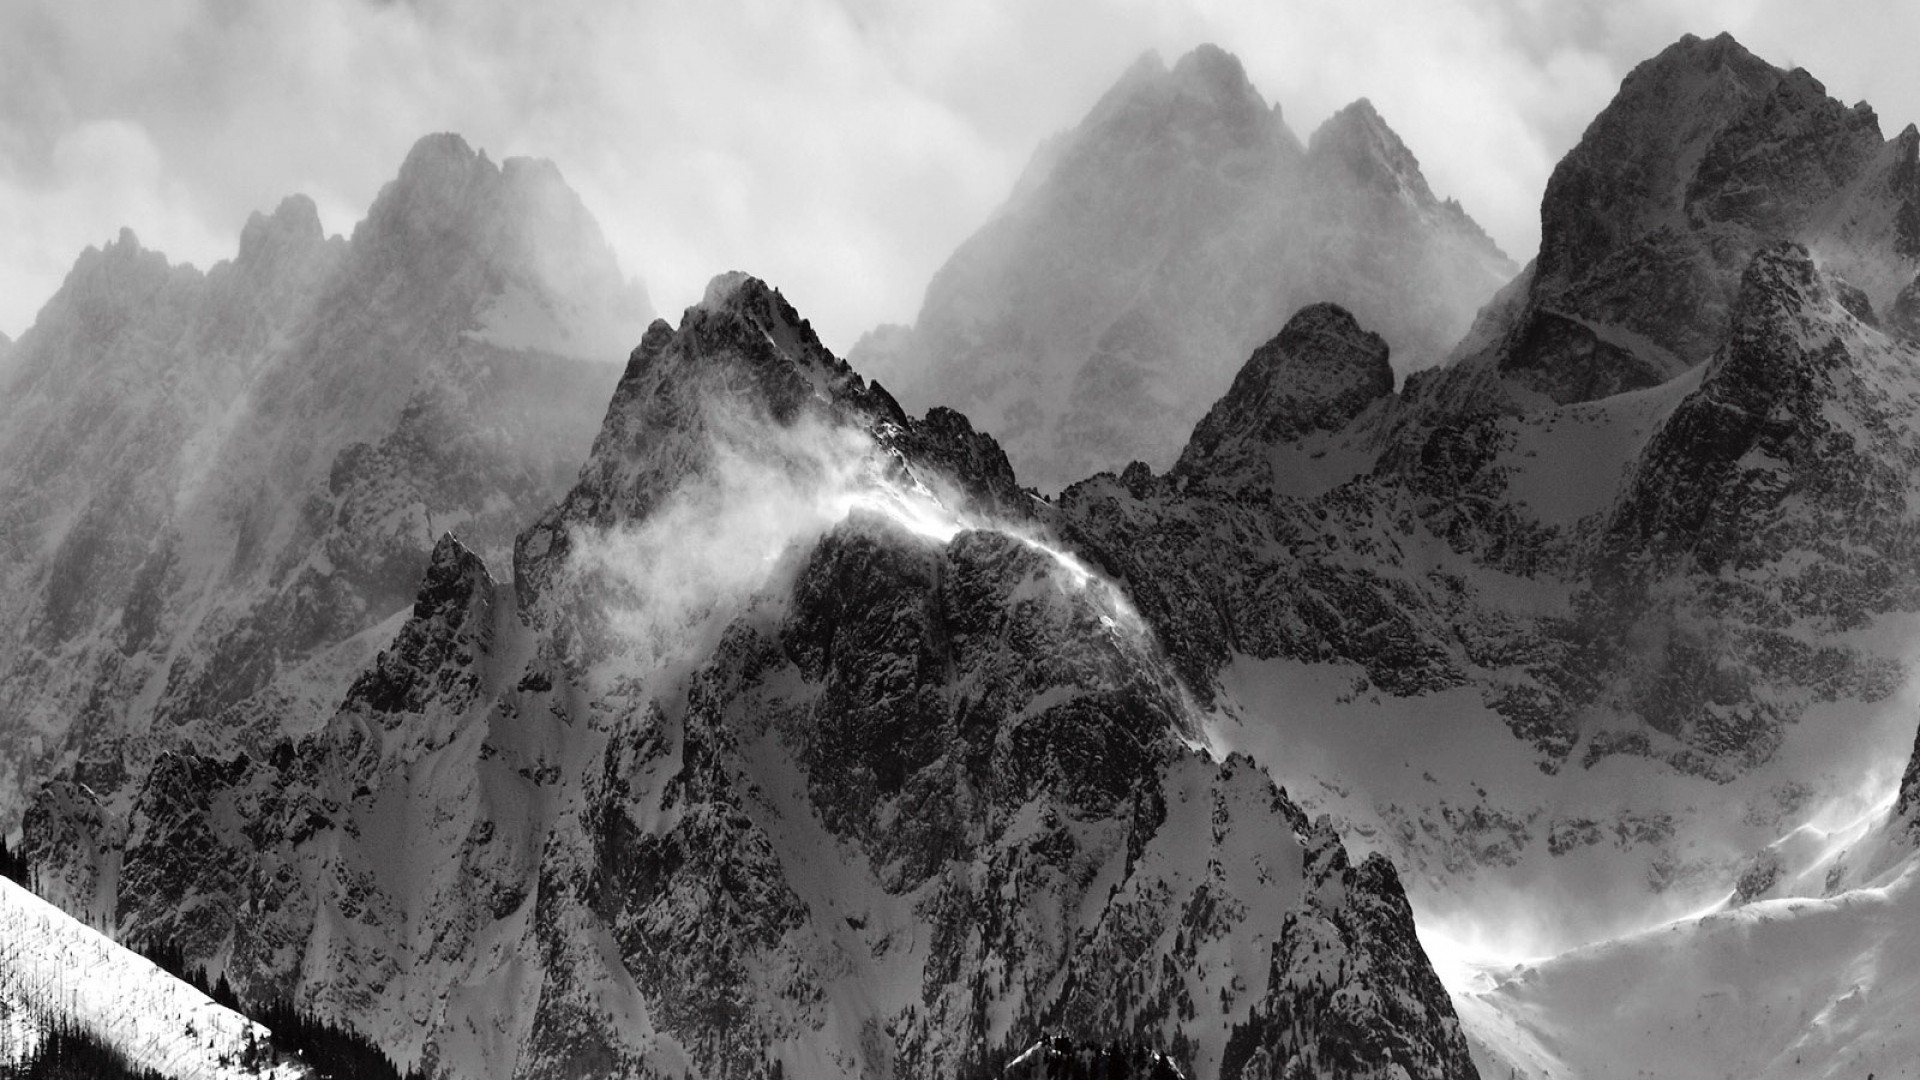 Amazing Wallpaper Mountain Fog - tops_mountains_gloom_fog_14841_1920x1080  You Should Have_833538.jpg